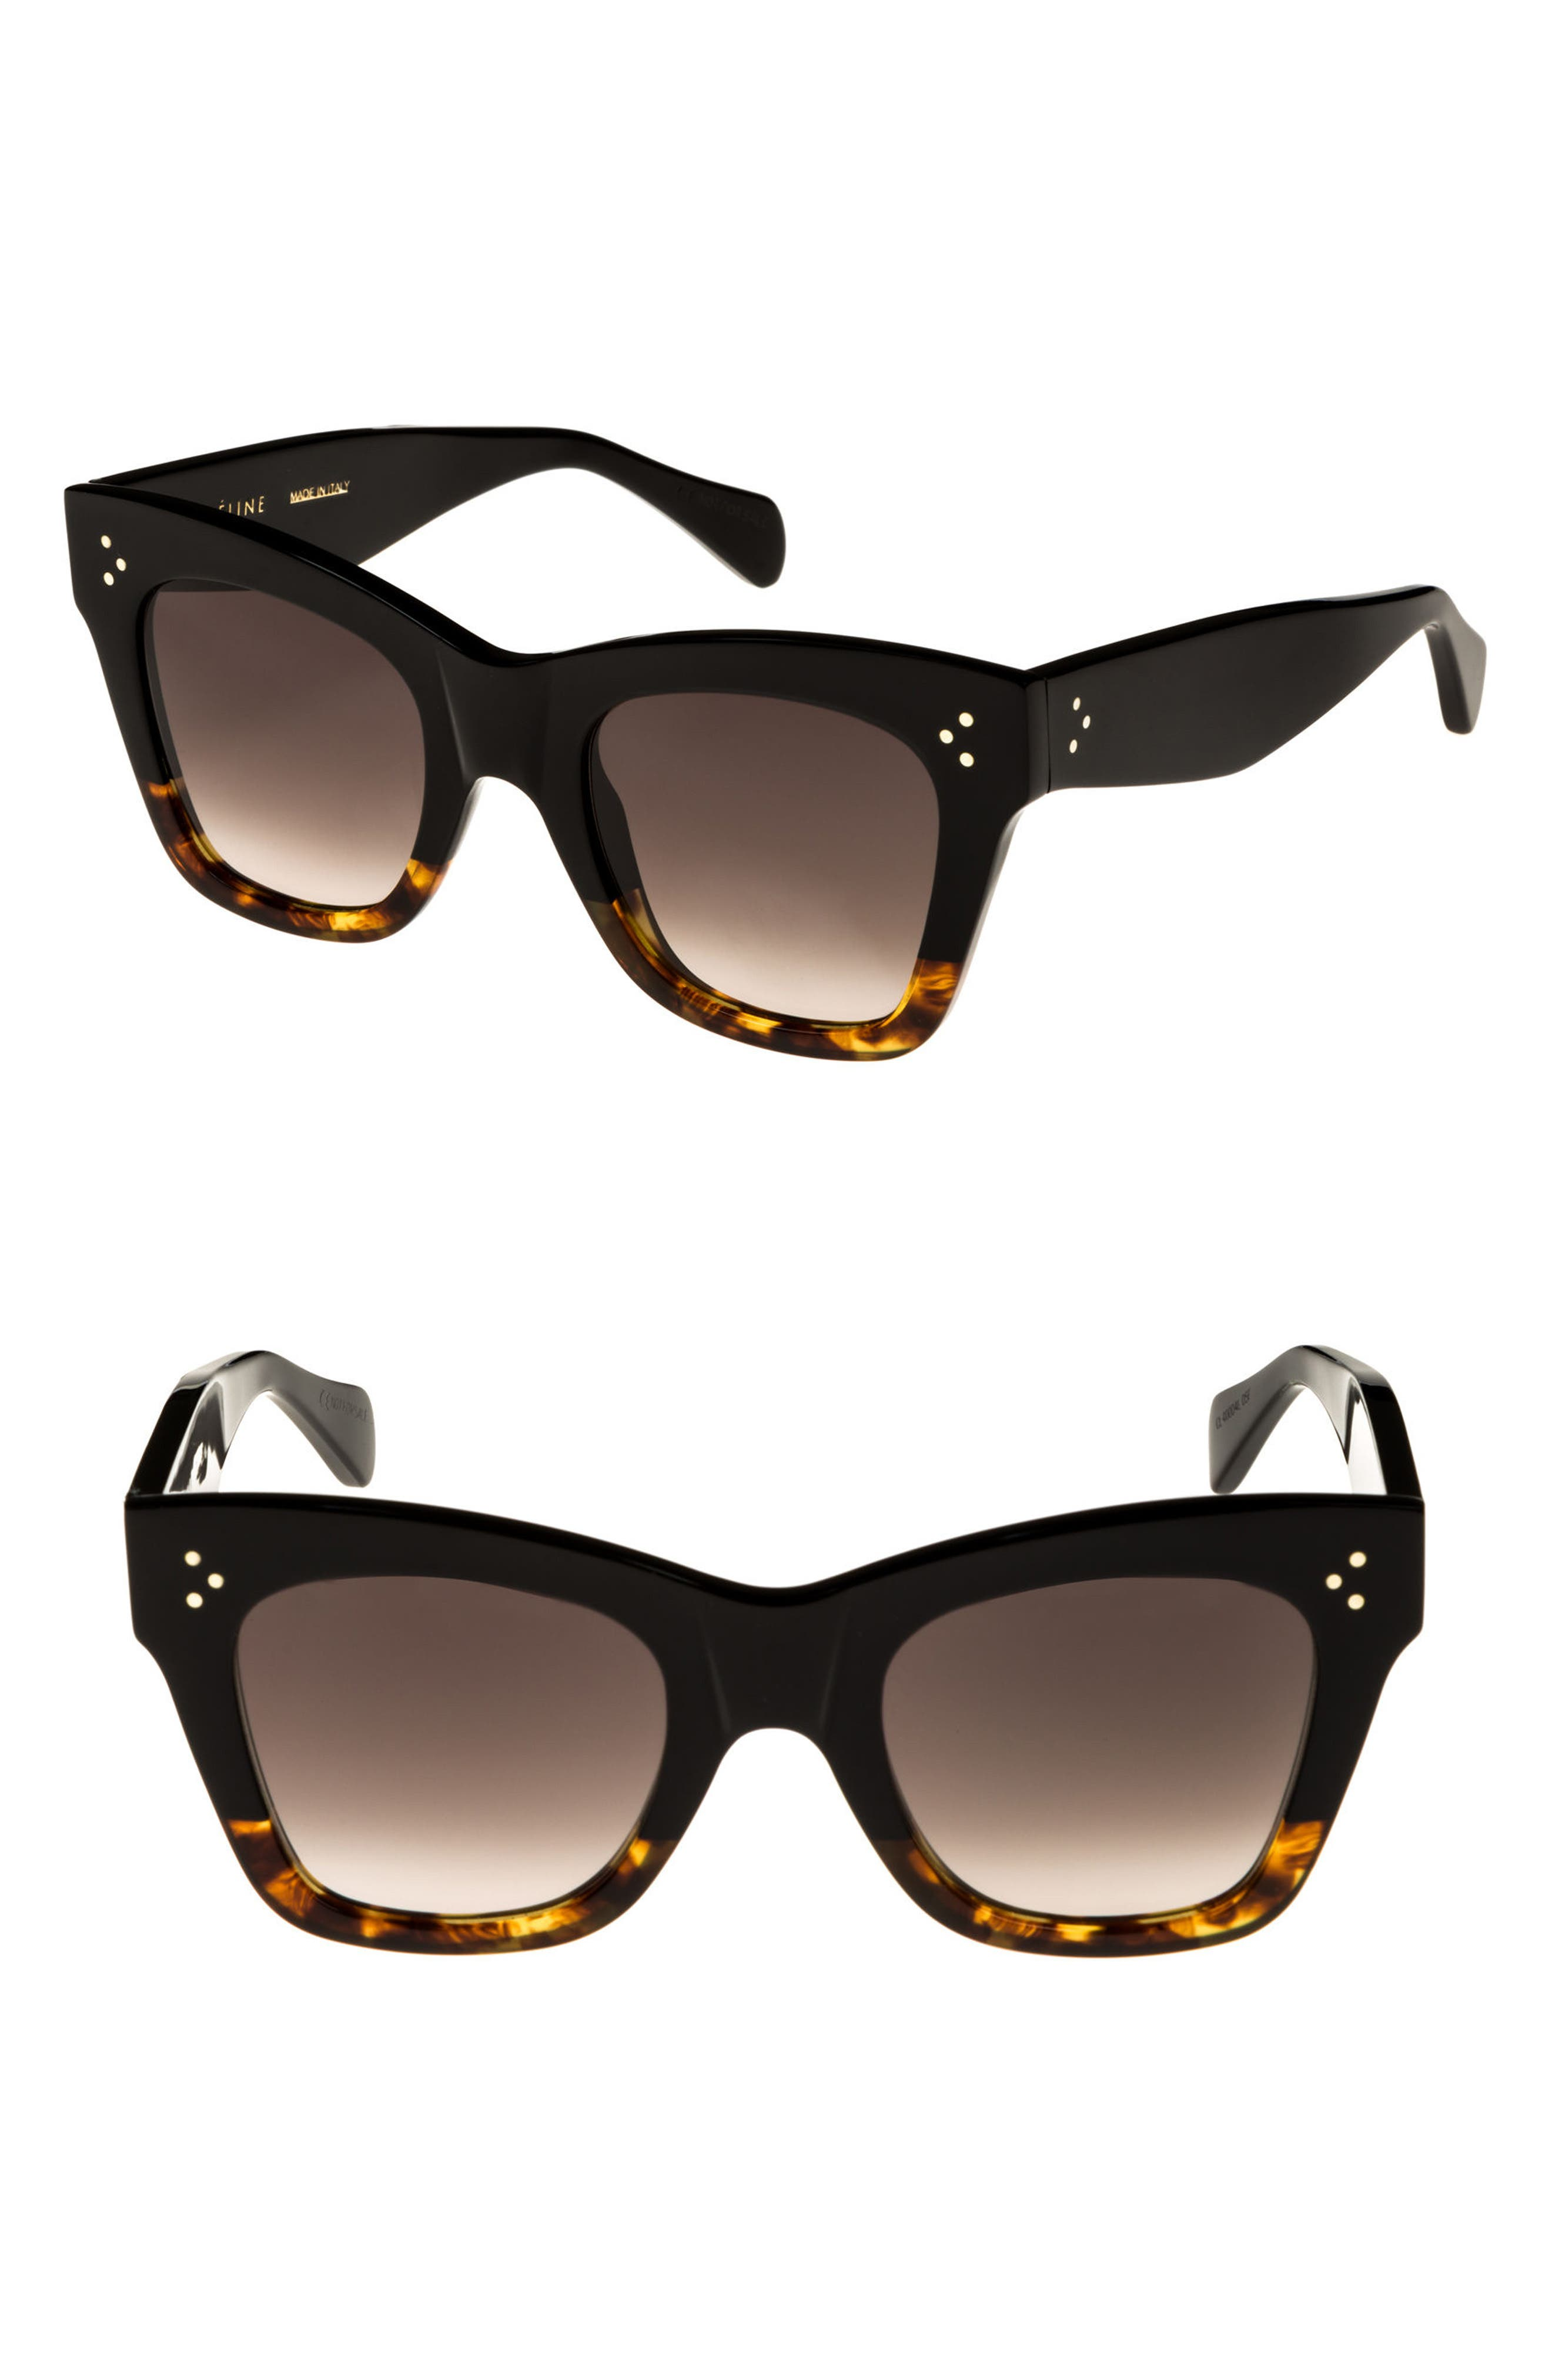 Celine 50Mm Gradient Butterfly Sunglasses - Black/ Havana